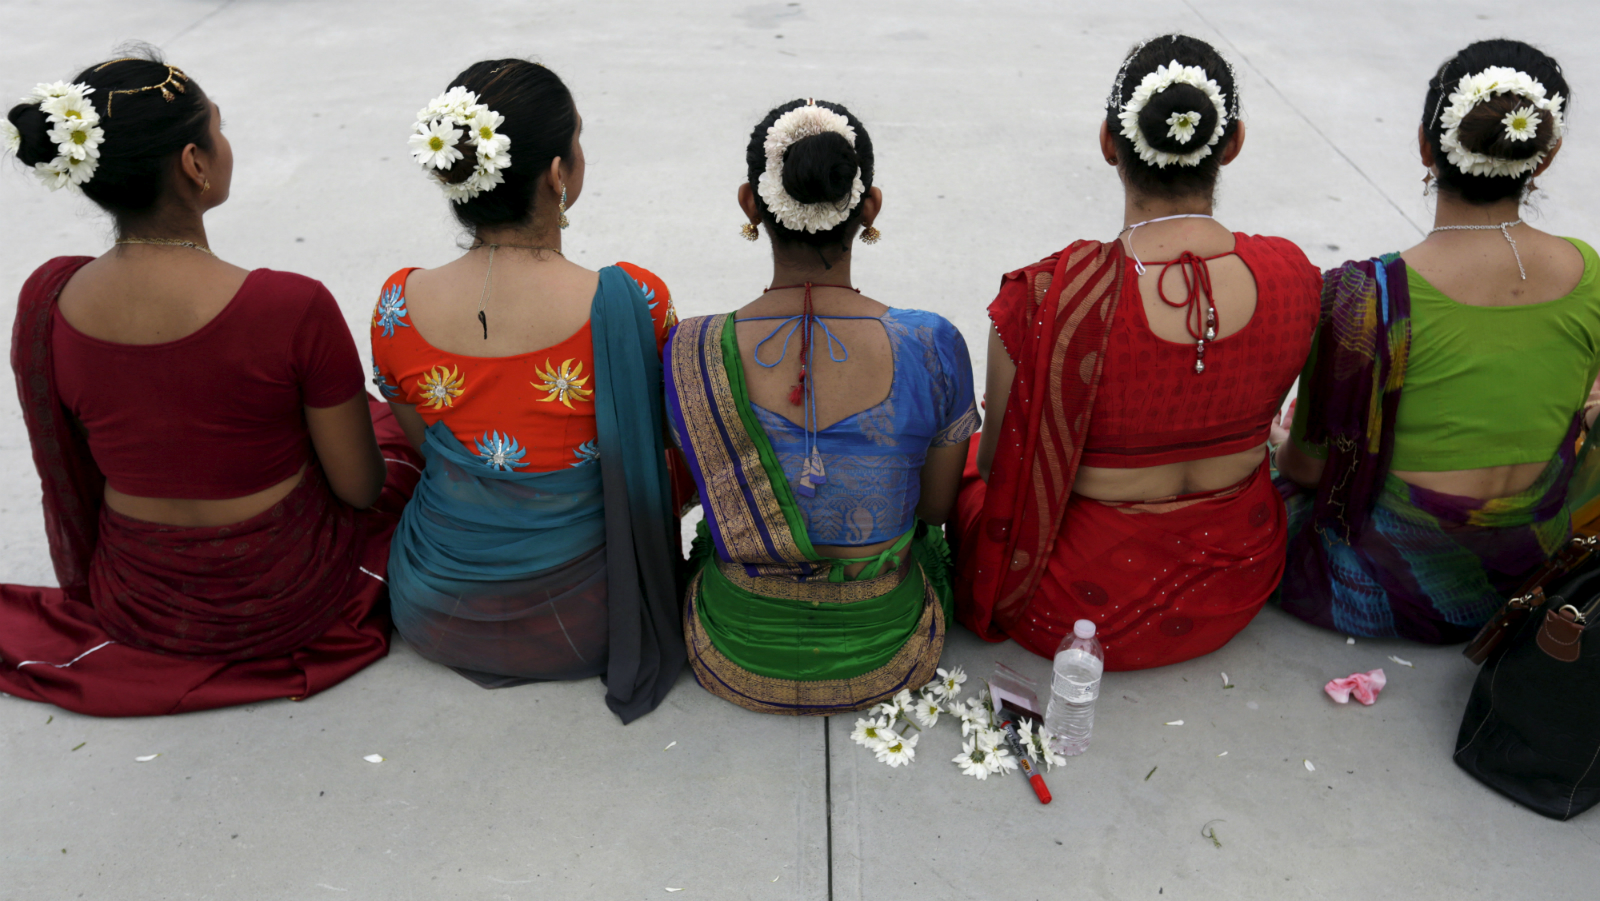 Women from the Hindu community rest during the annual Ratha Yatra celebration in Panama City June 6, 2015.